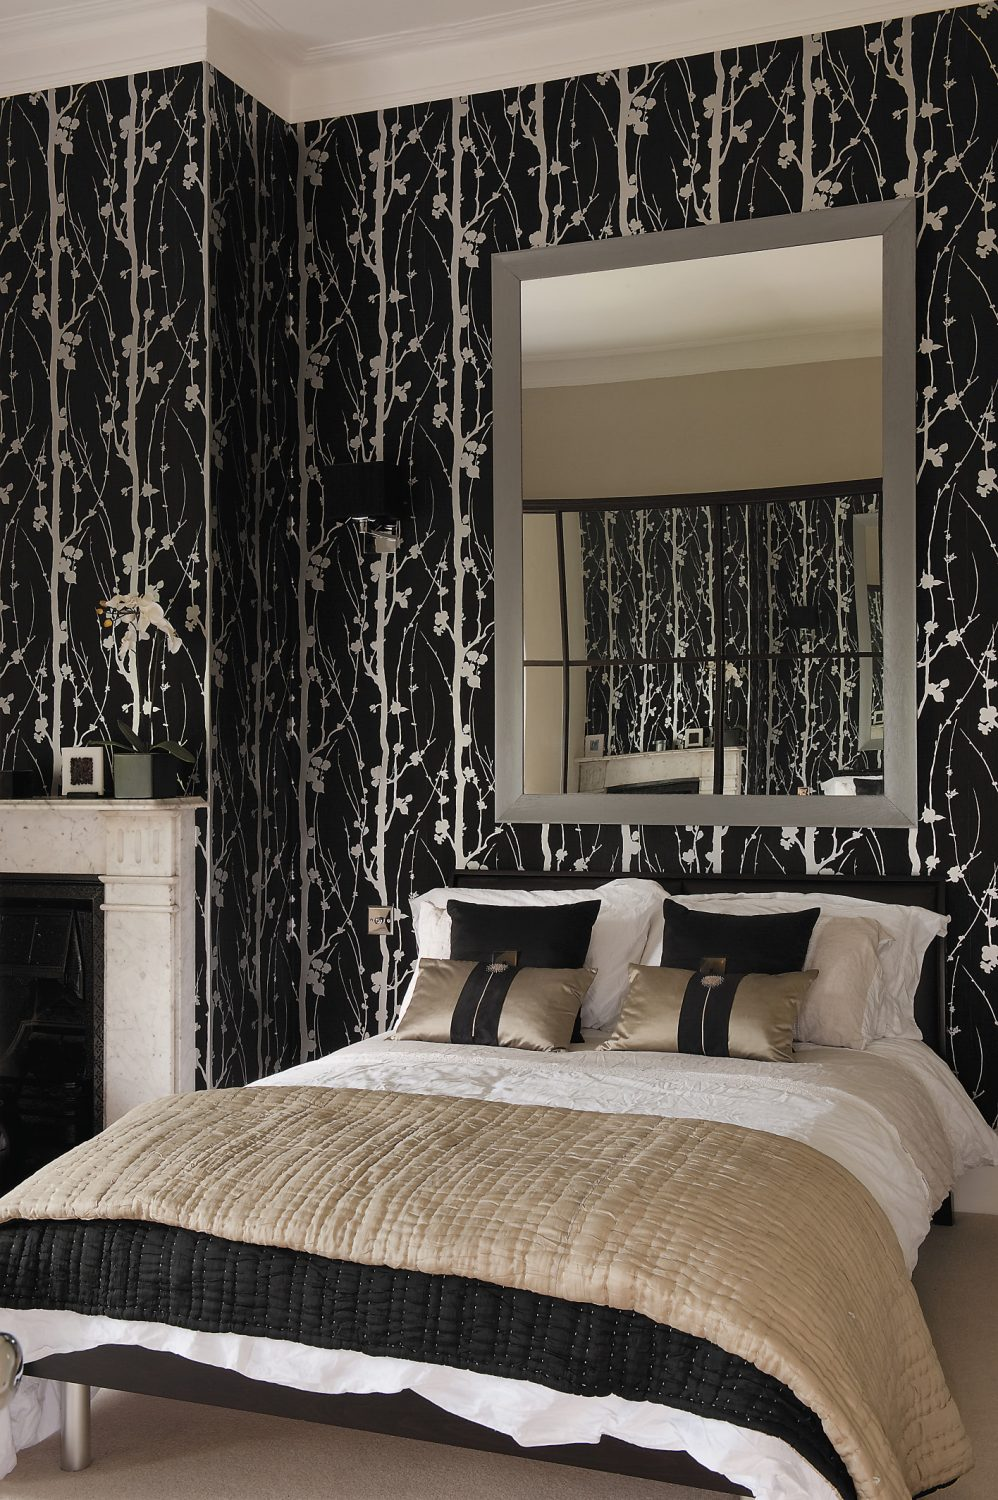 The first-floor guest room. At over three-and-a-half metres, it's the highest room in the house and its height is accentuated by the striking vertical pattern of the black and silver wallpaper